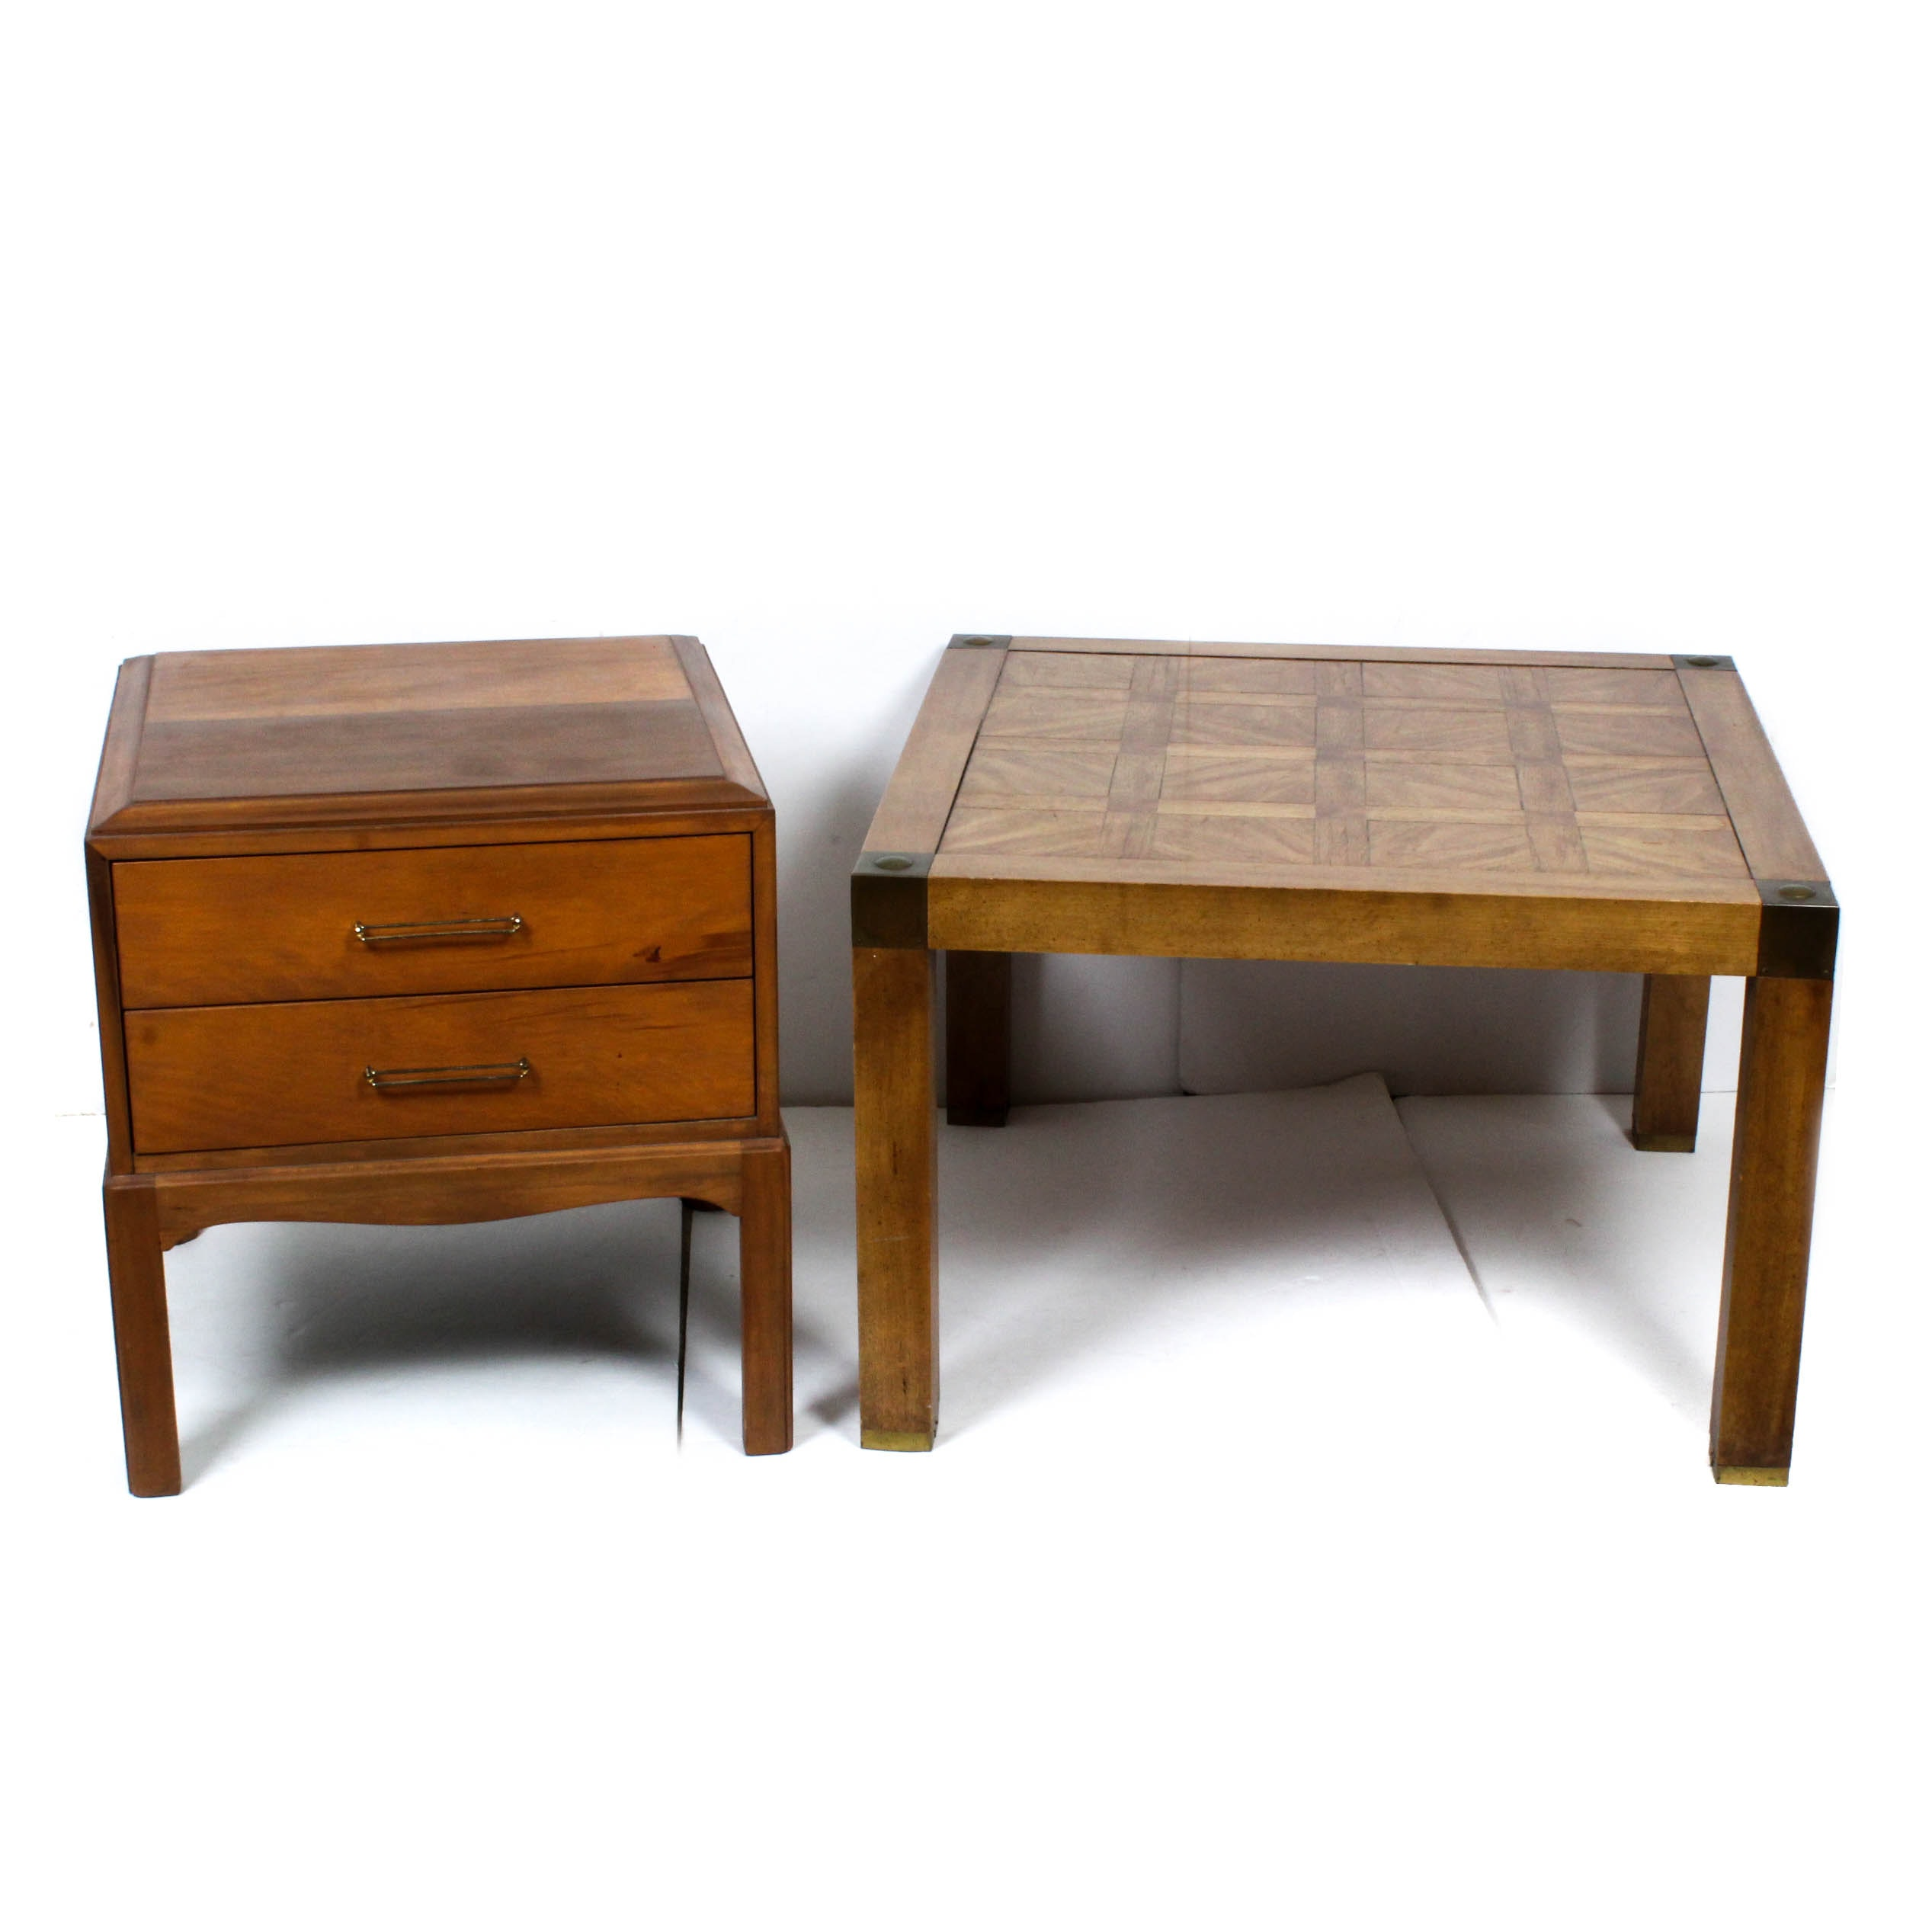 Vintage Wooden Coffee Table and End Table